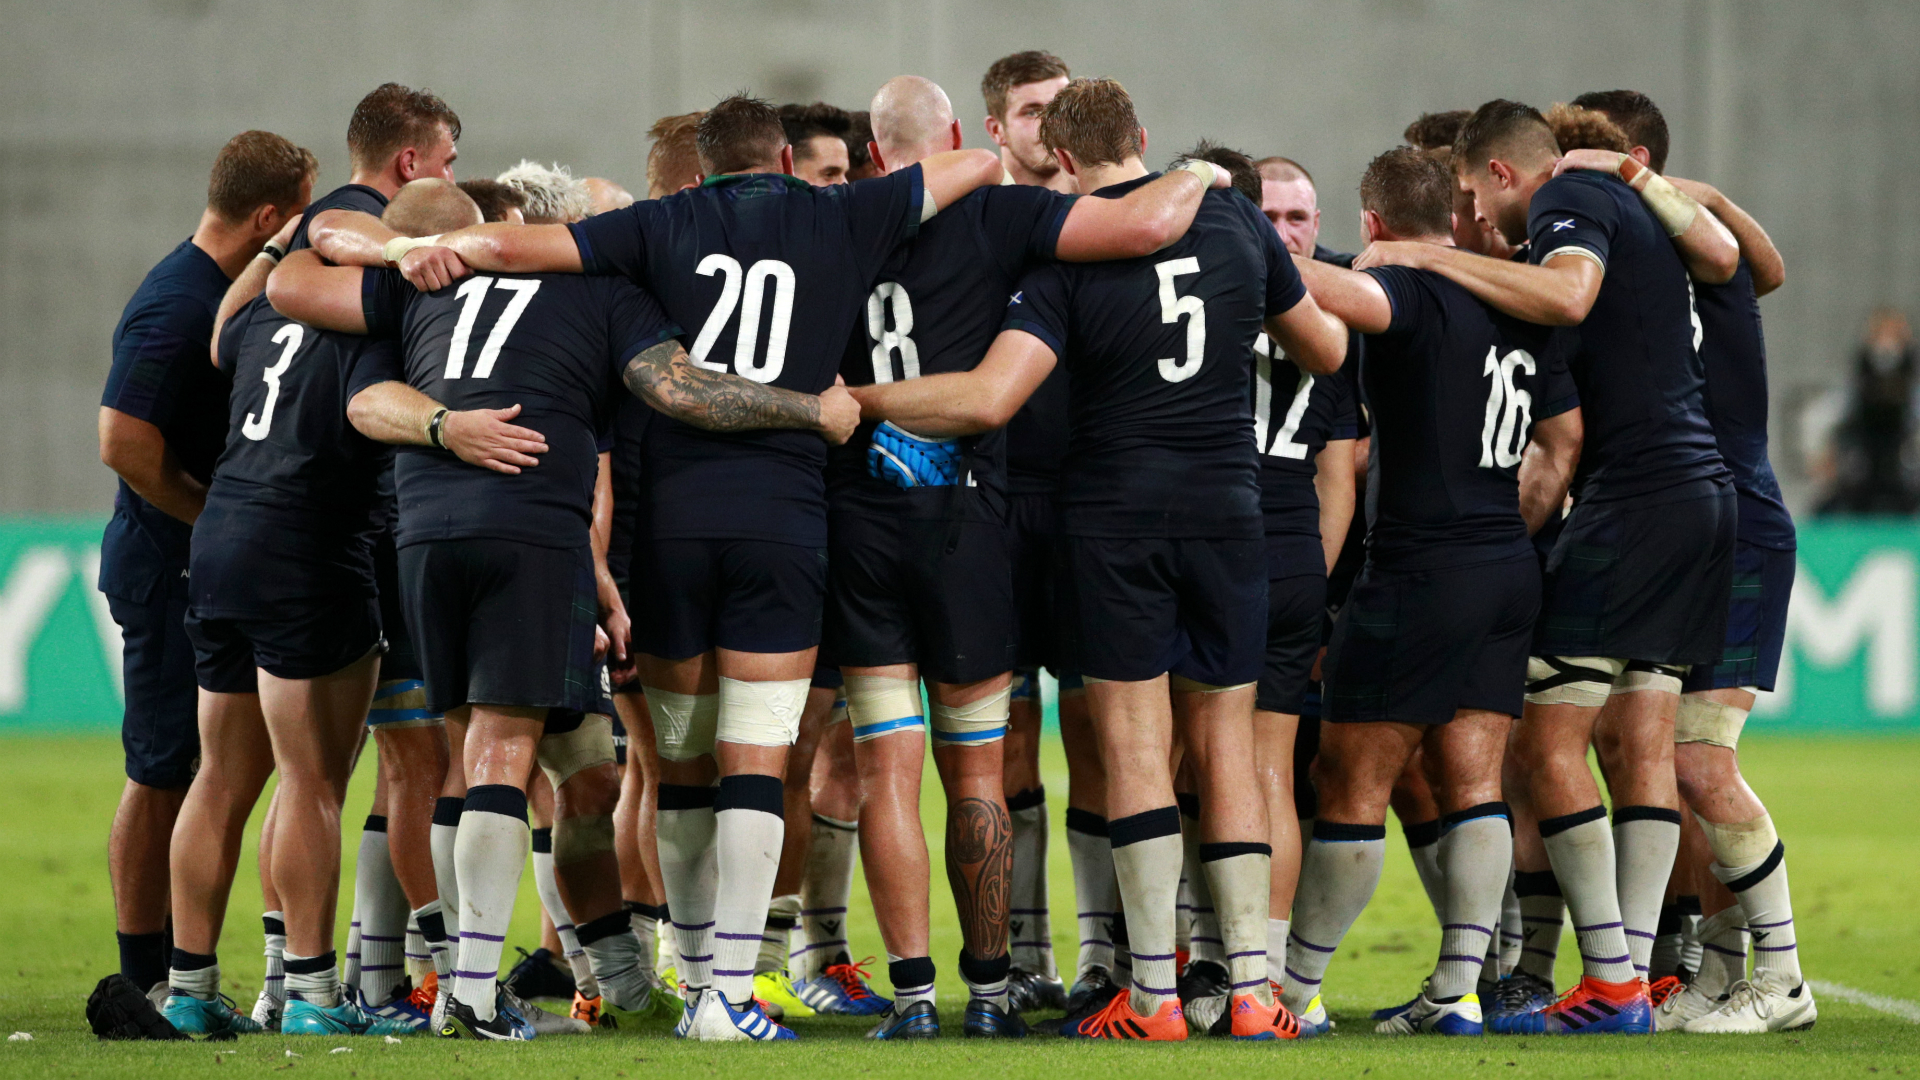 Rugby World Cup 2019: Scotland's hopes in the balance with inspection to follow Typhoon Hagibis